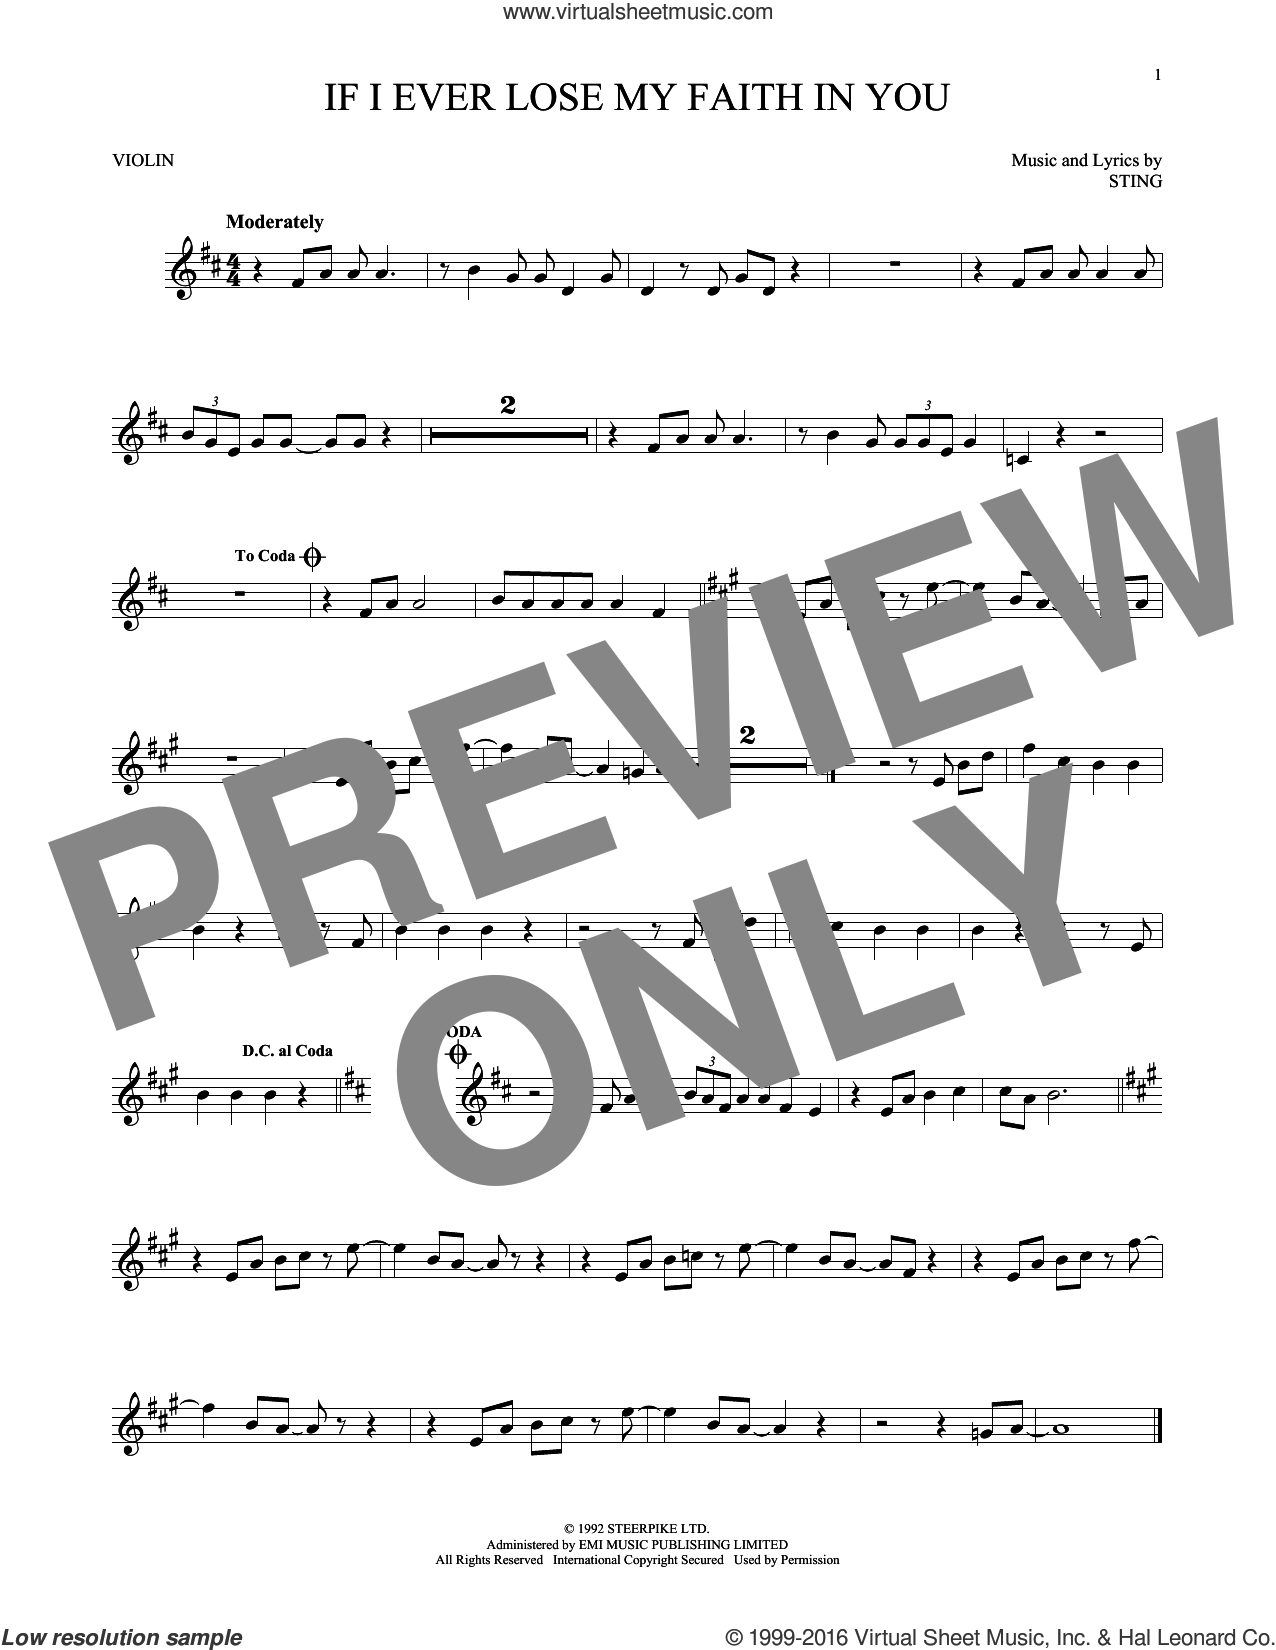 If I Ever Lose My Faith In You sheet music for violin solo by Sting. Score Image Preview.